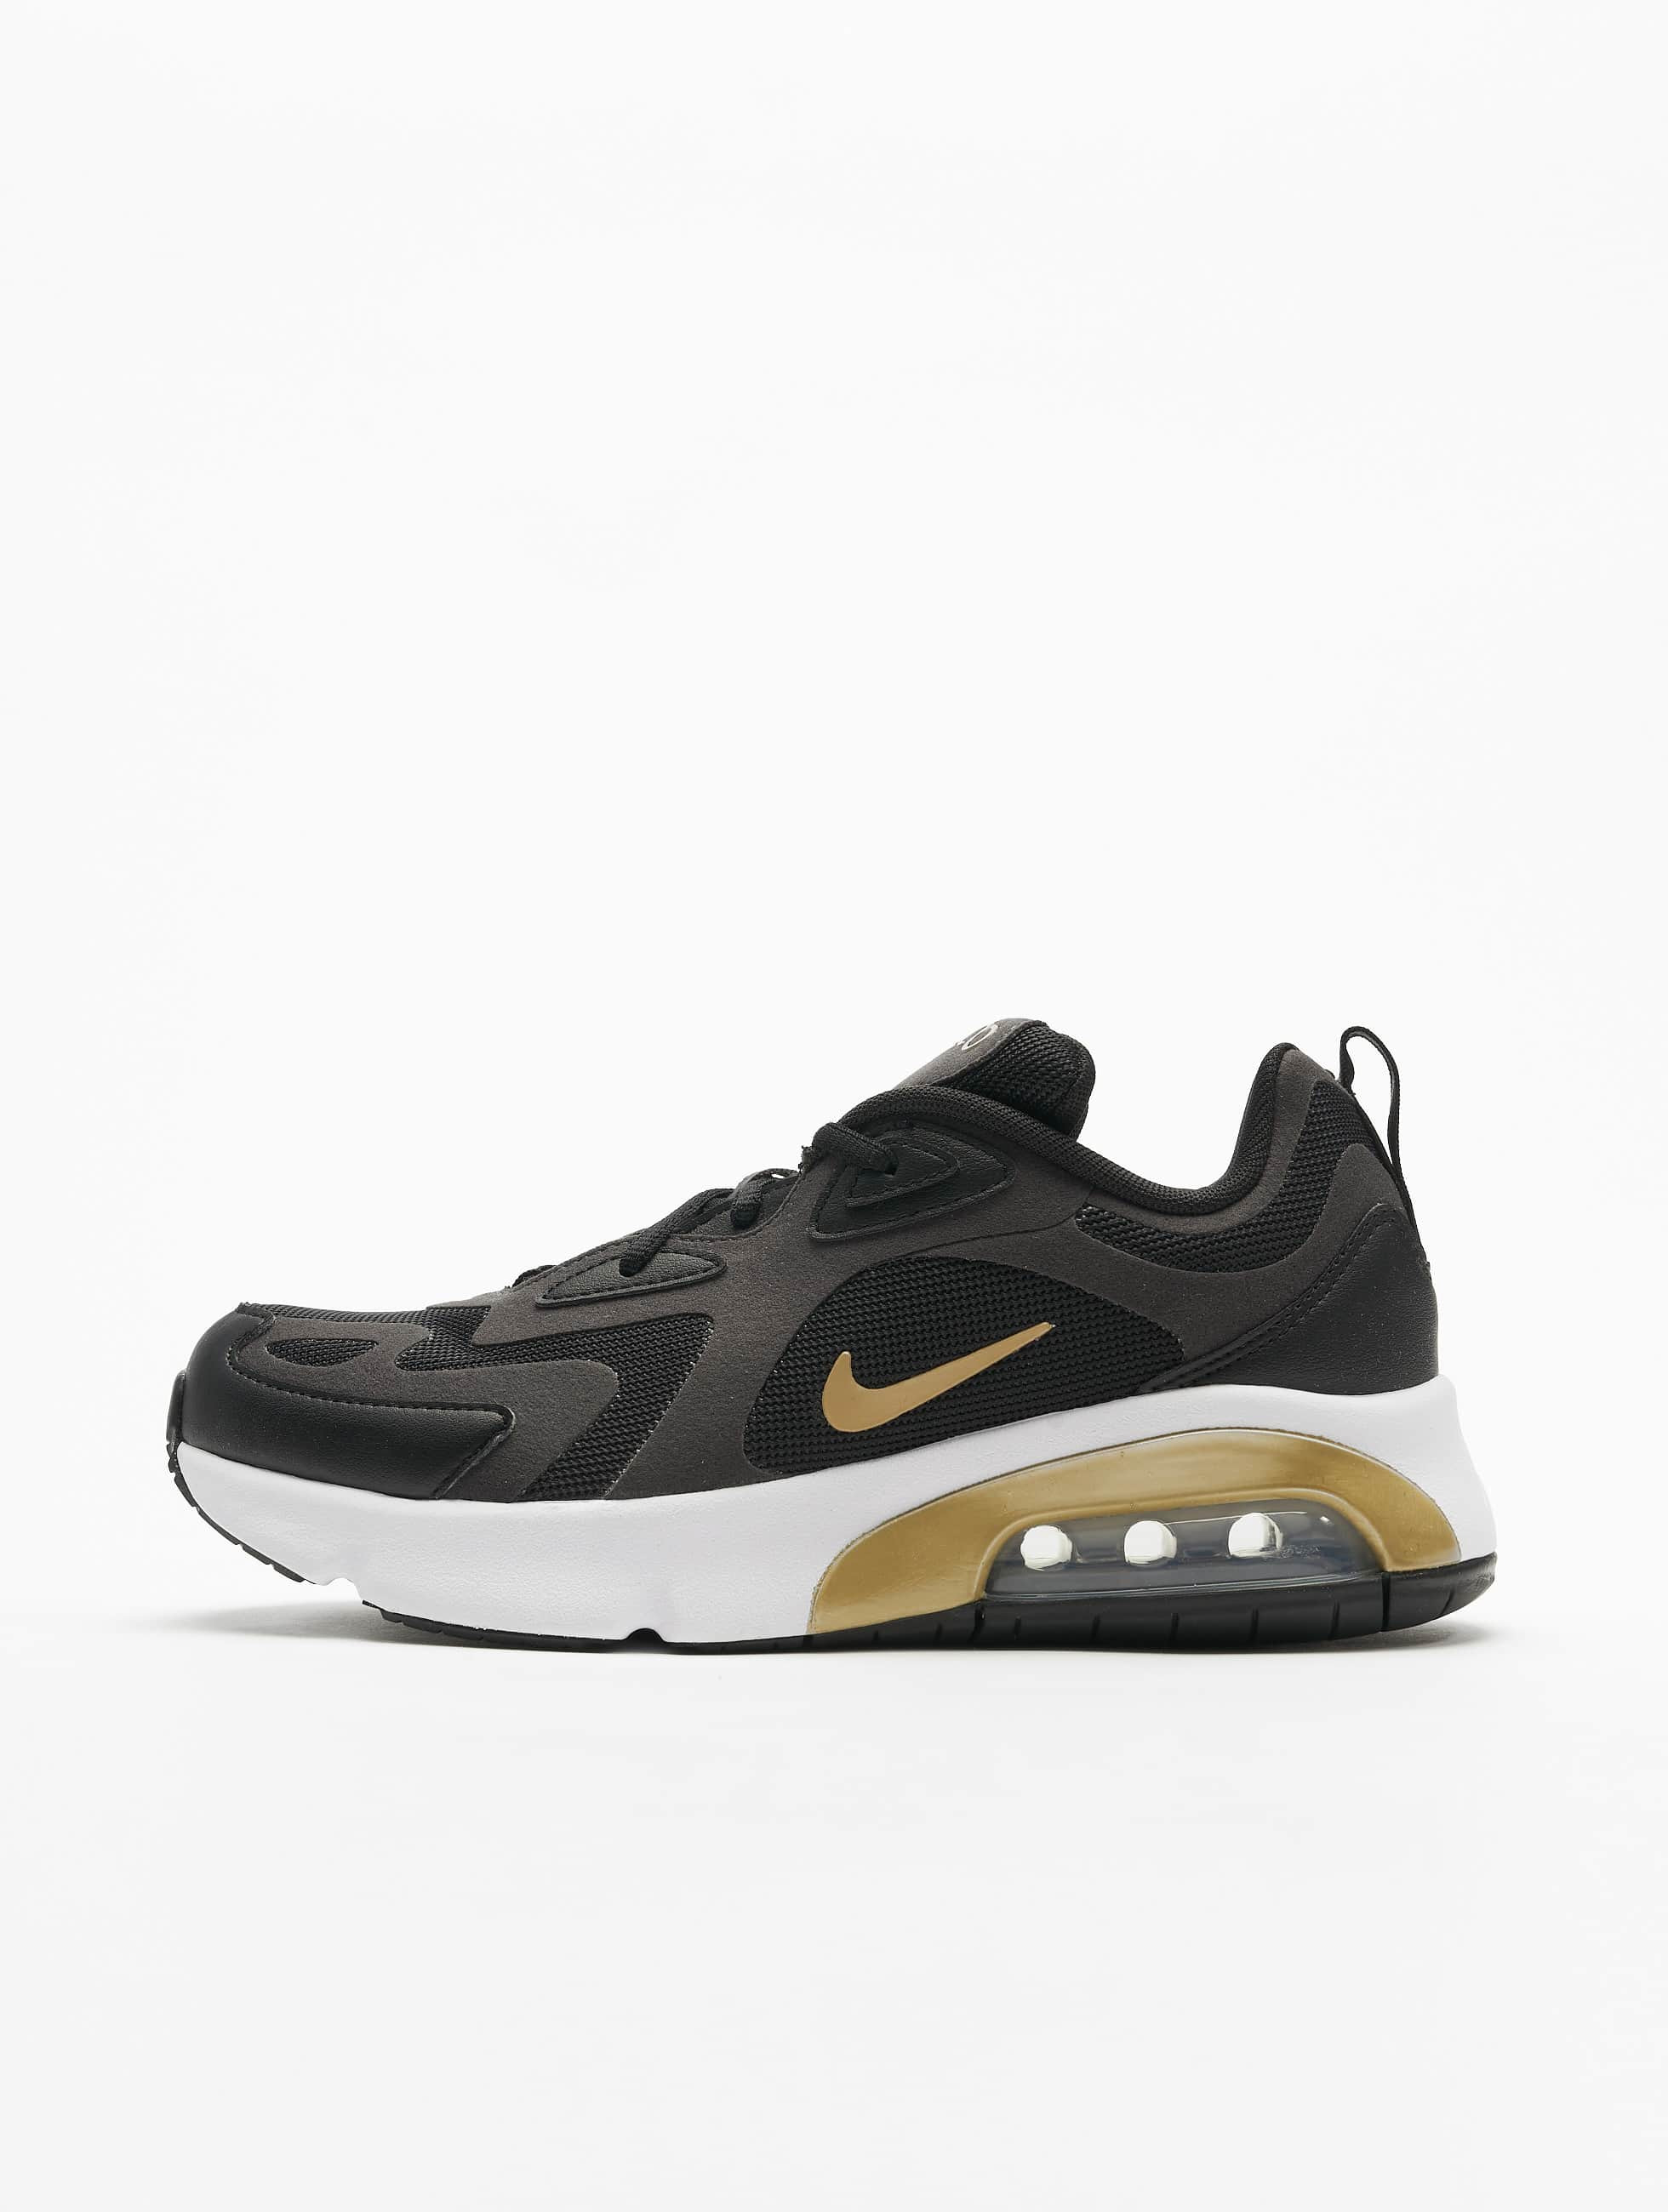 Nike Air Max 200 (GS) Sneakers BlackMetallic GoldenAnthraciteWhite